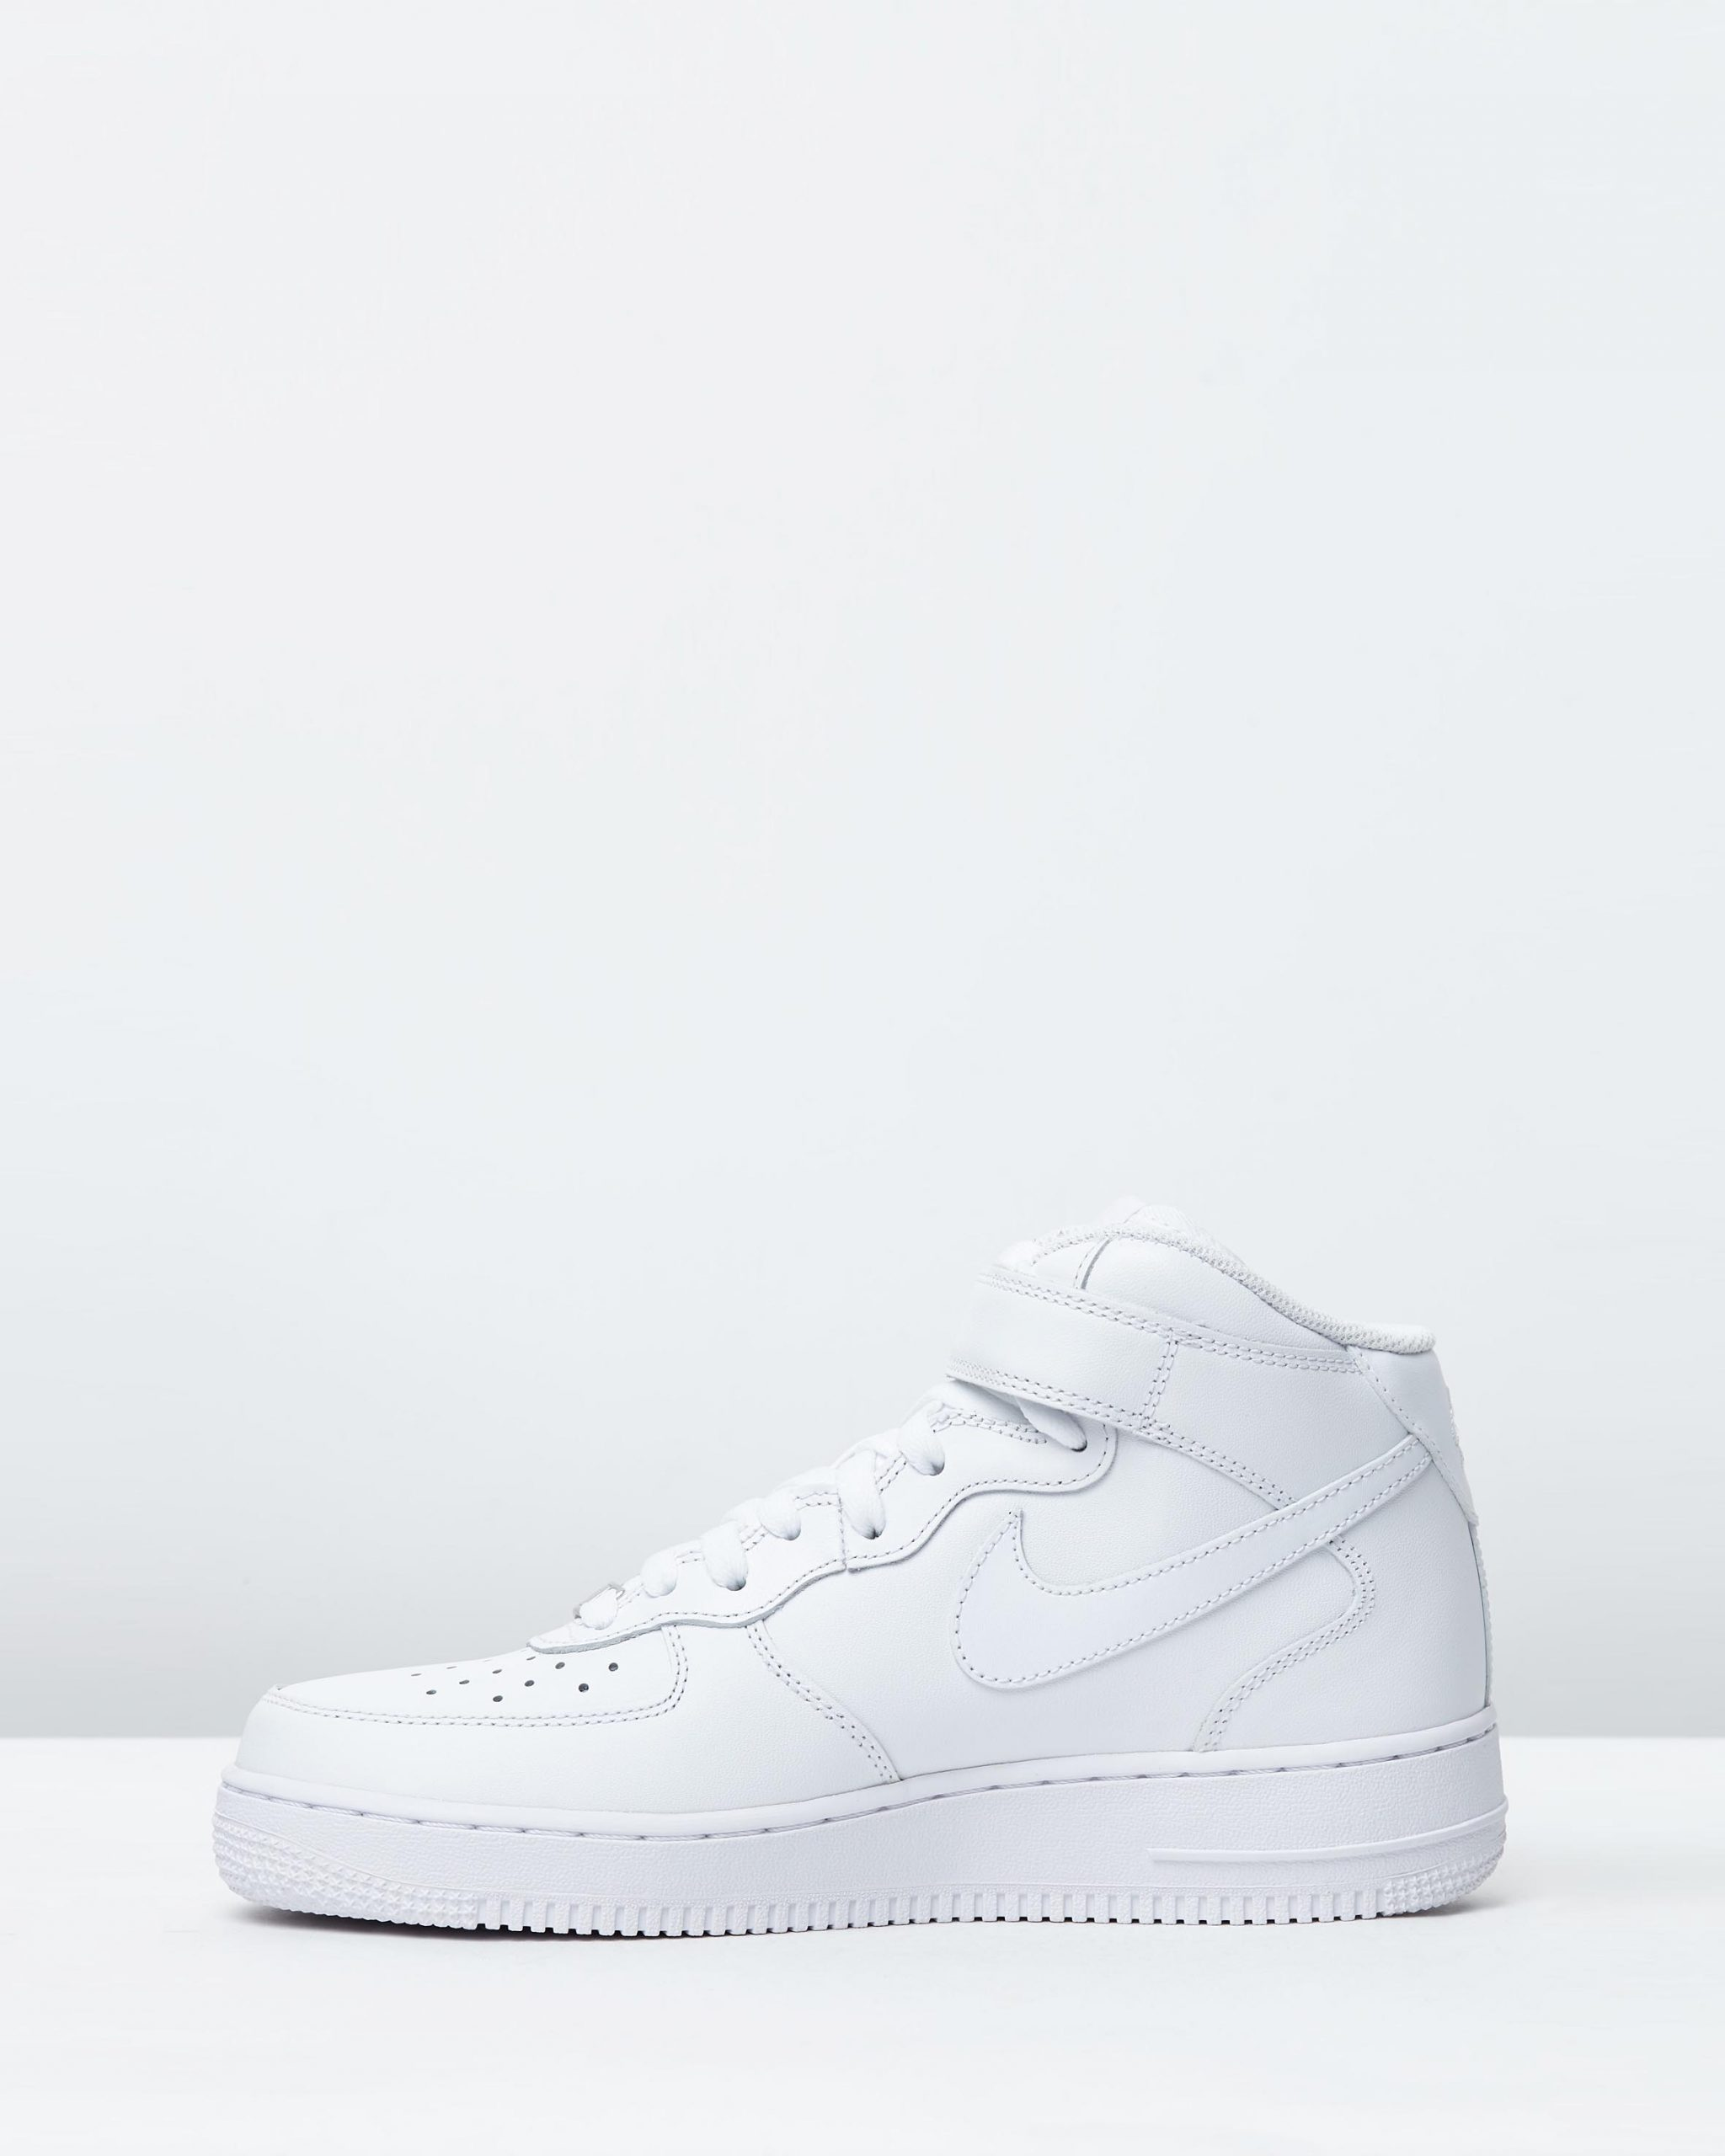 césped Actor armario  Nike Air Force 1 Mid '07 LE White | 95Gallery.com